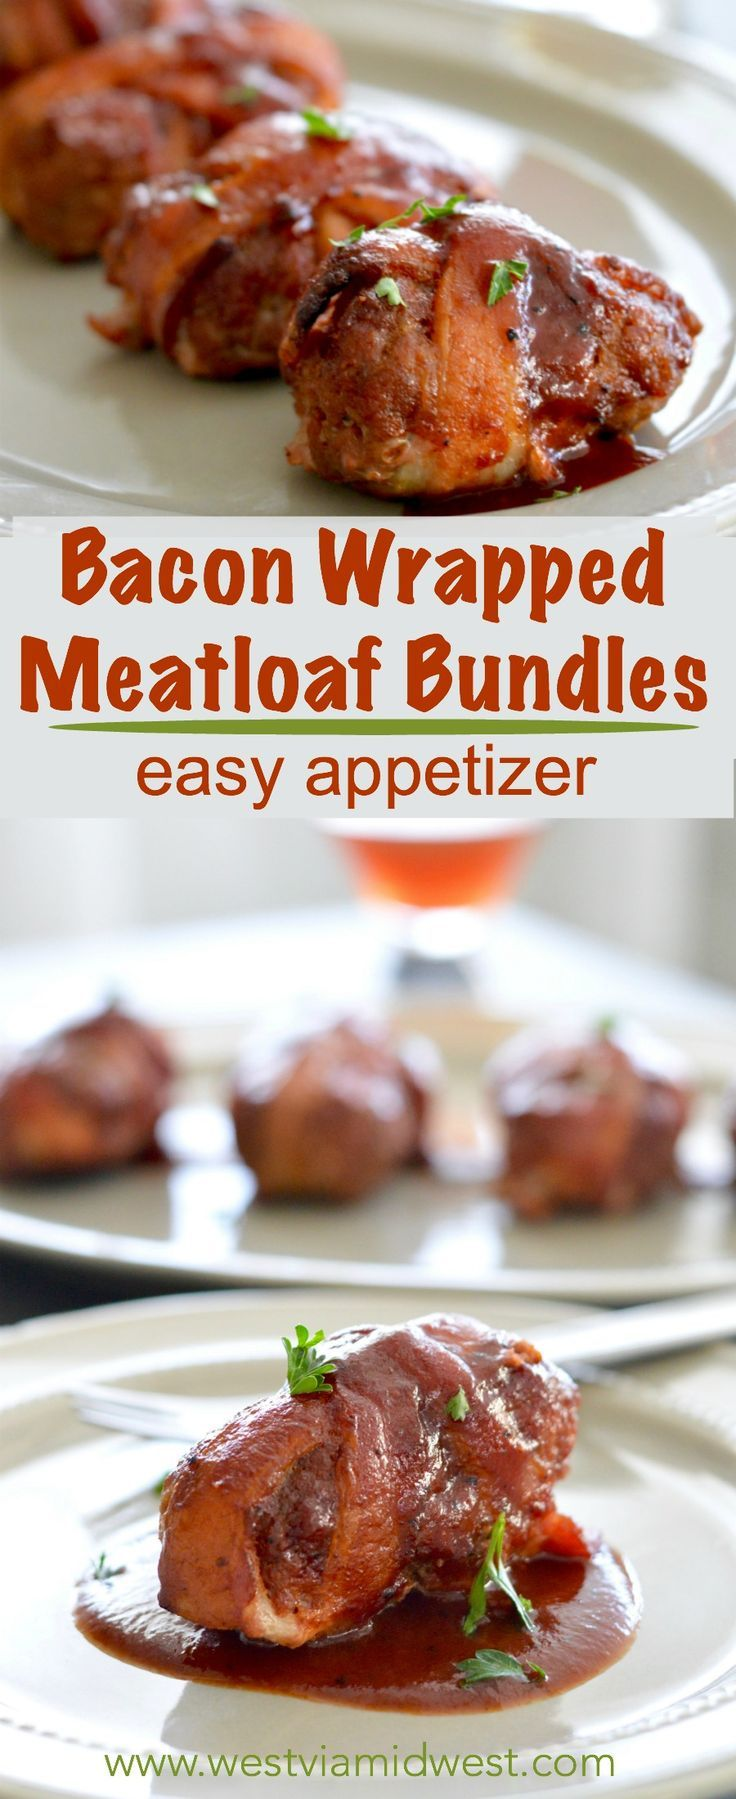 Hearty bacon Meatloaf Appetizer Bundles: Crispy bacon wrapped around meatloaf bundles, brushed with bbq sauce for a filling and comfort food appetizer! Ideal for the holiday party season because they are filling and delicious!  www.westviamidwest.com via @westviamidwest